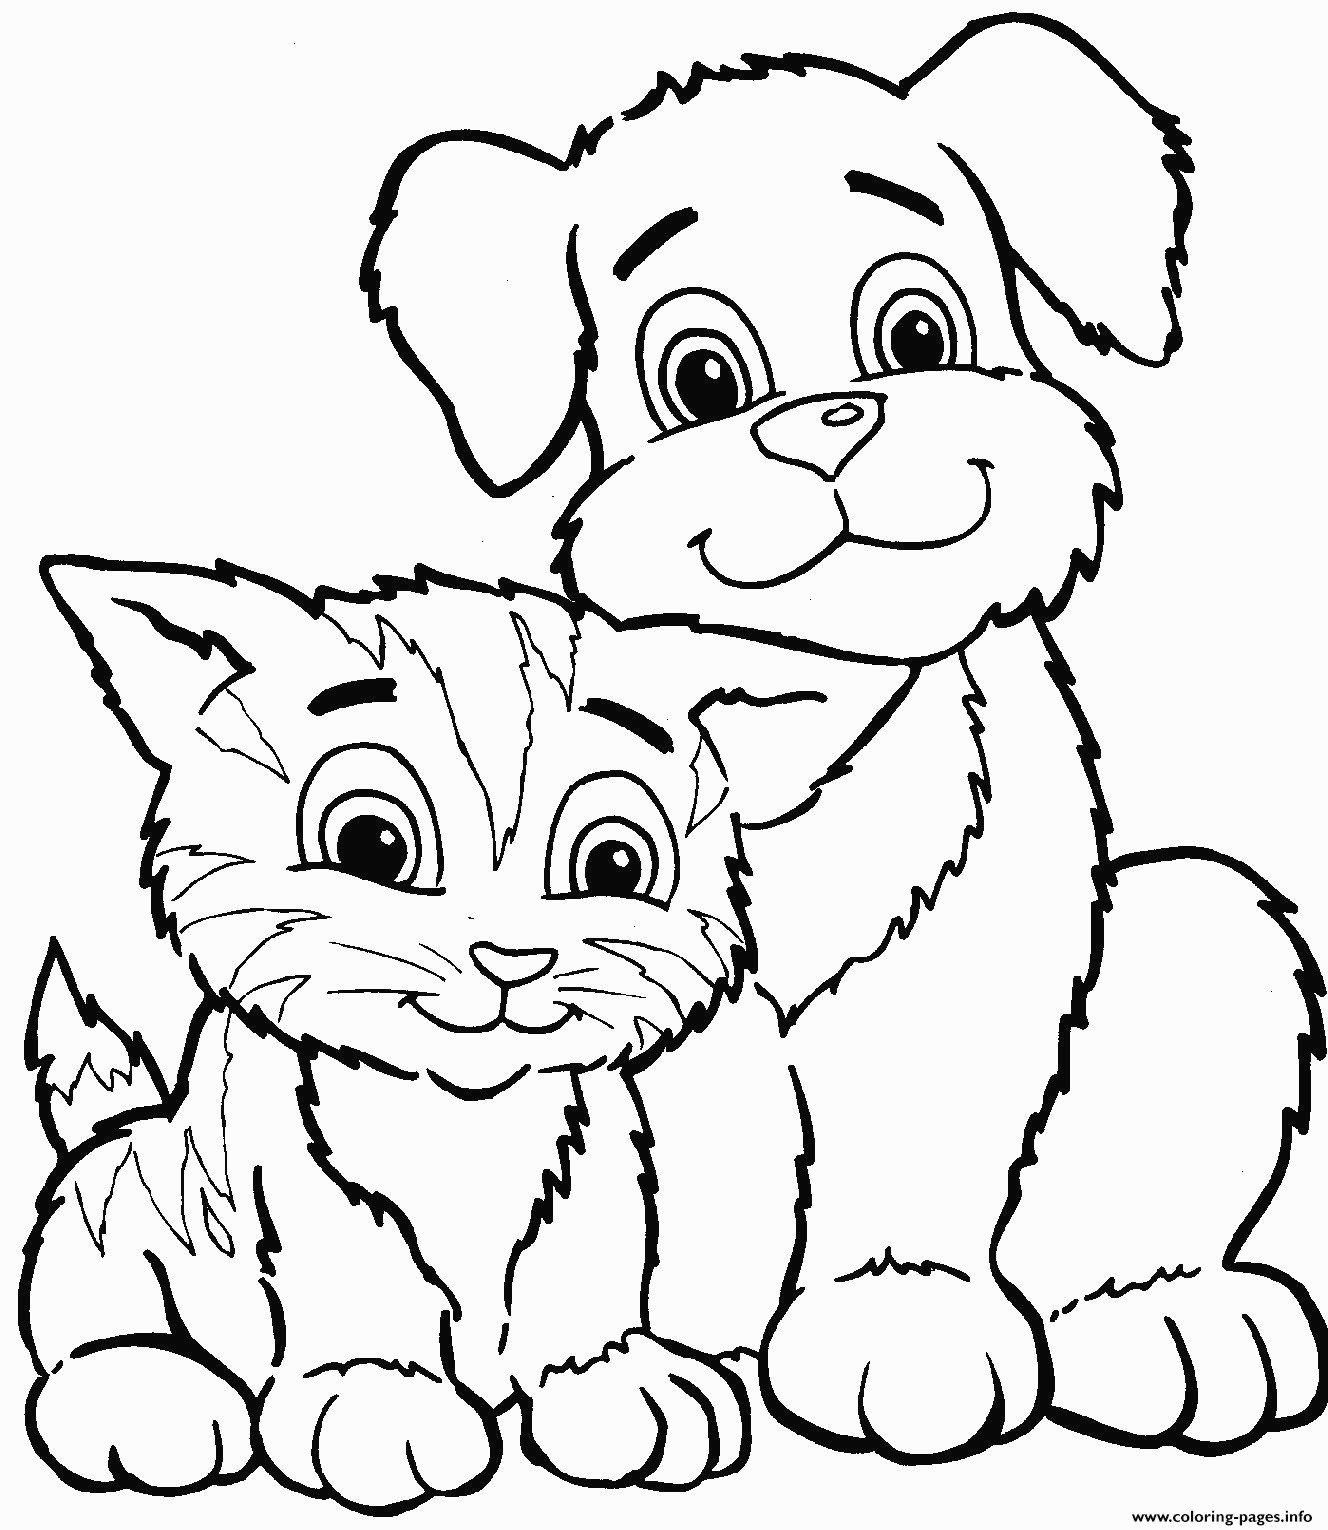 Kitty Cat Coloring Pages Beautiful Unique Warrior Cat Coloring Pages Nocn In 2020 Dog Coloring Page Puppy Coloring Pages Cat Coloring Page